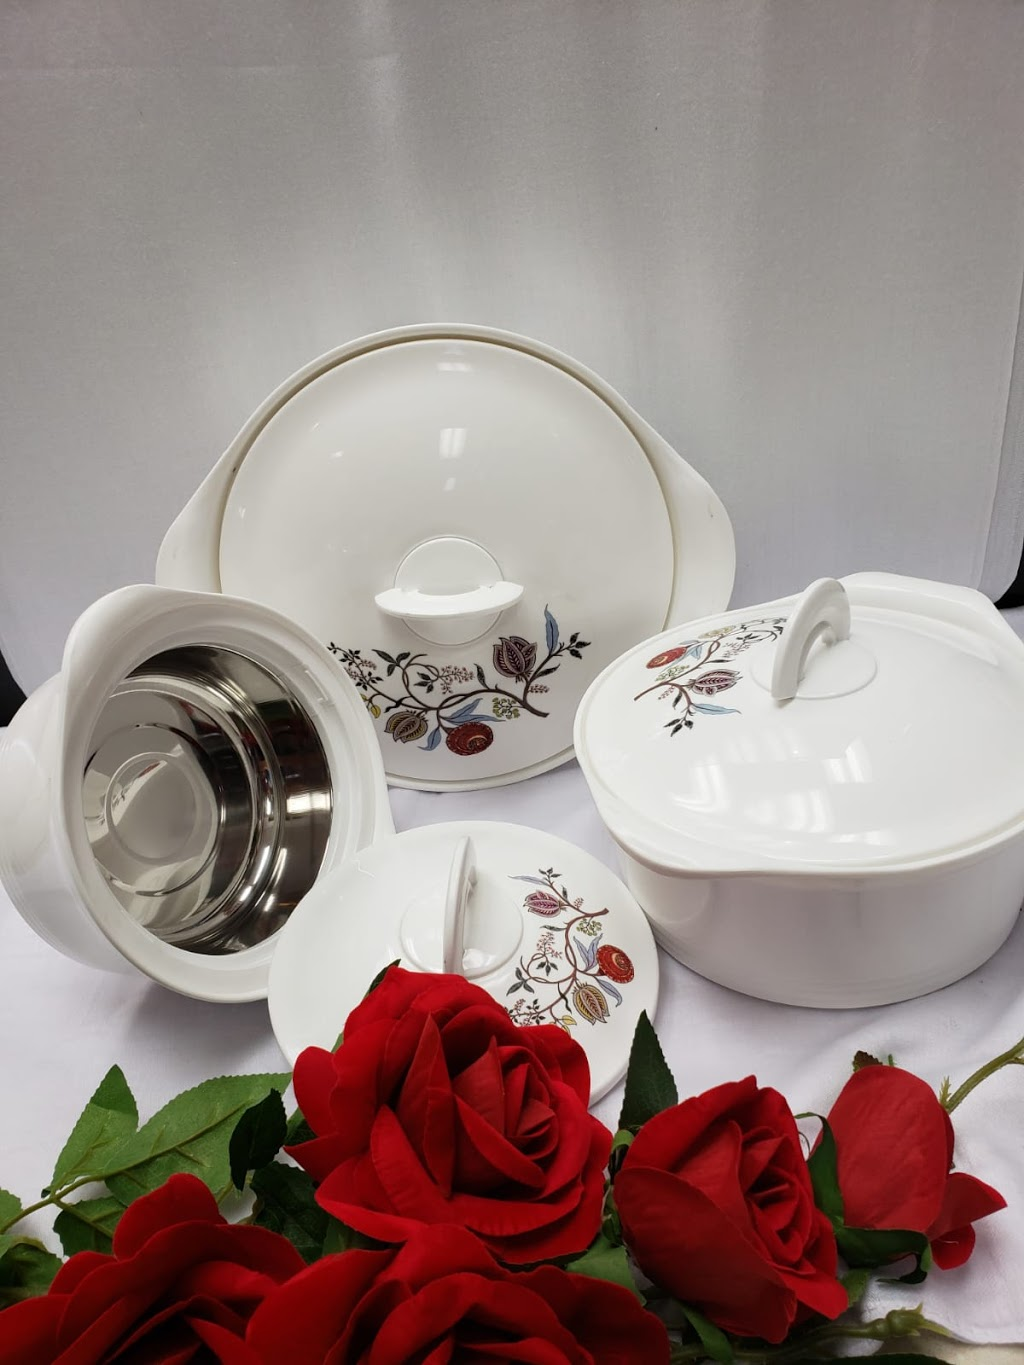 VK empire Home & Kitchenware | home goods store | 1168 Albion Rd, Etobicoke, ON M9V 1A8, Canada | 4168172541 OR +1 416-817-2541